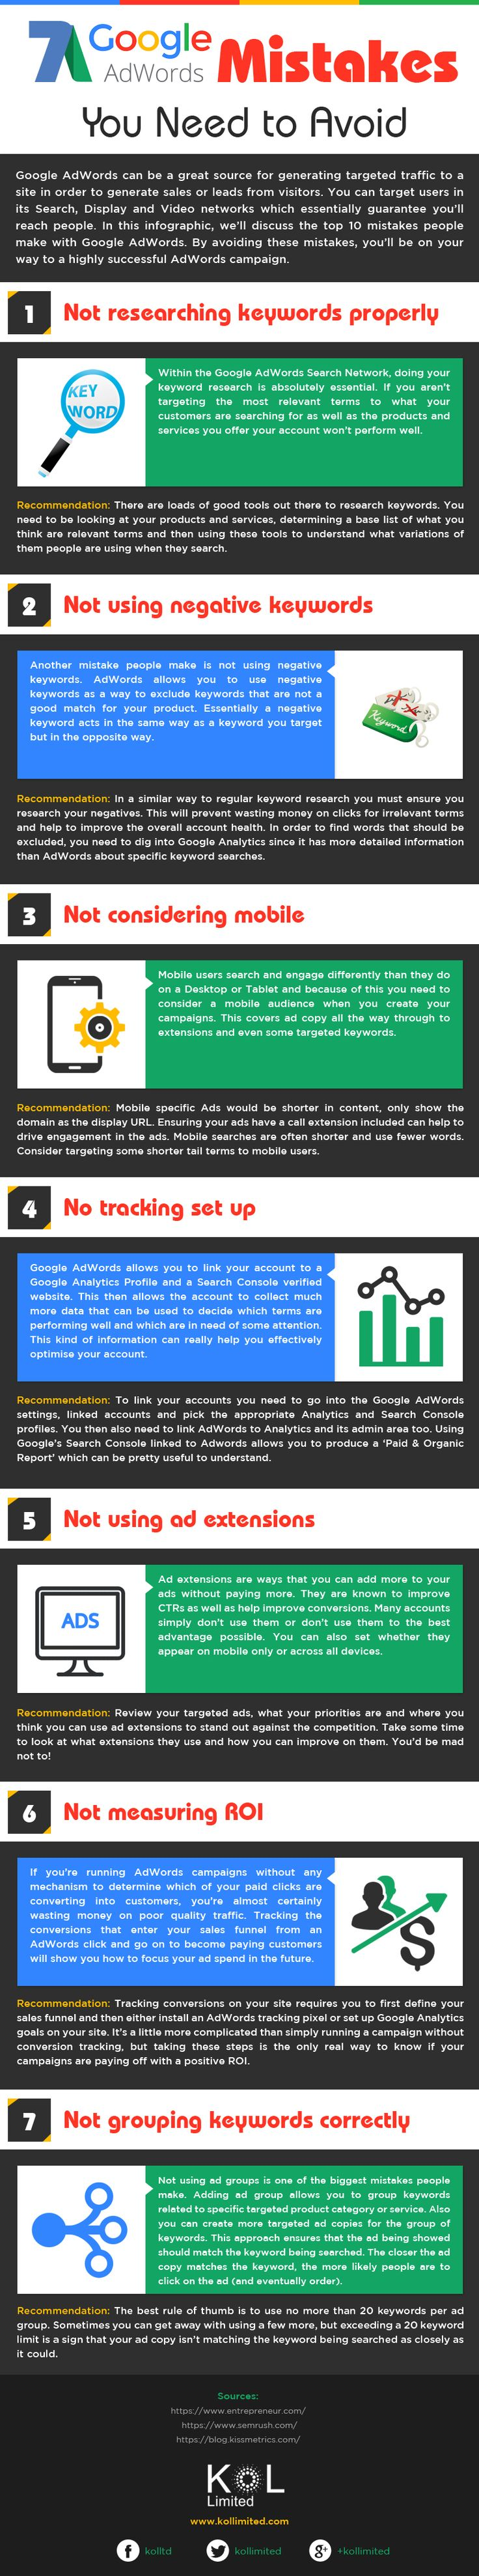 7 mistakes you should avoid while using #adwords#ppc #Seo